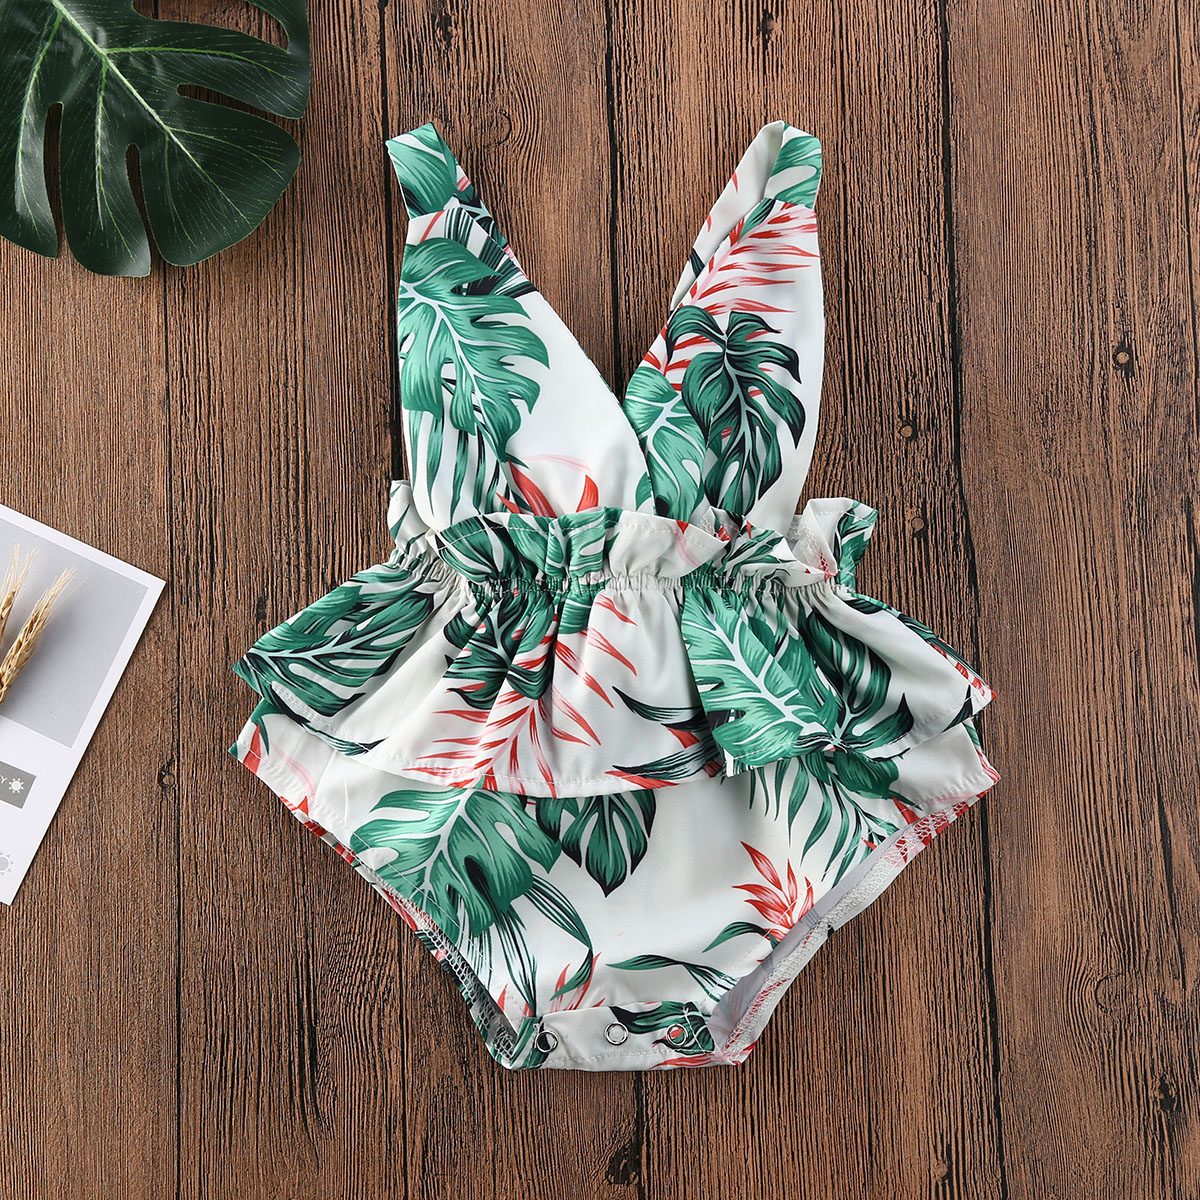 Baby Girls Summer Clothing Bodysuits Cotton Floral Print Jumpsuit For Newborn Girls Ruffle Cute Sleeveless Romper Outfits 0-18M